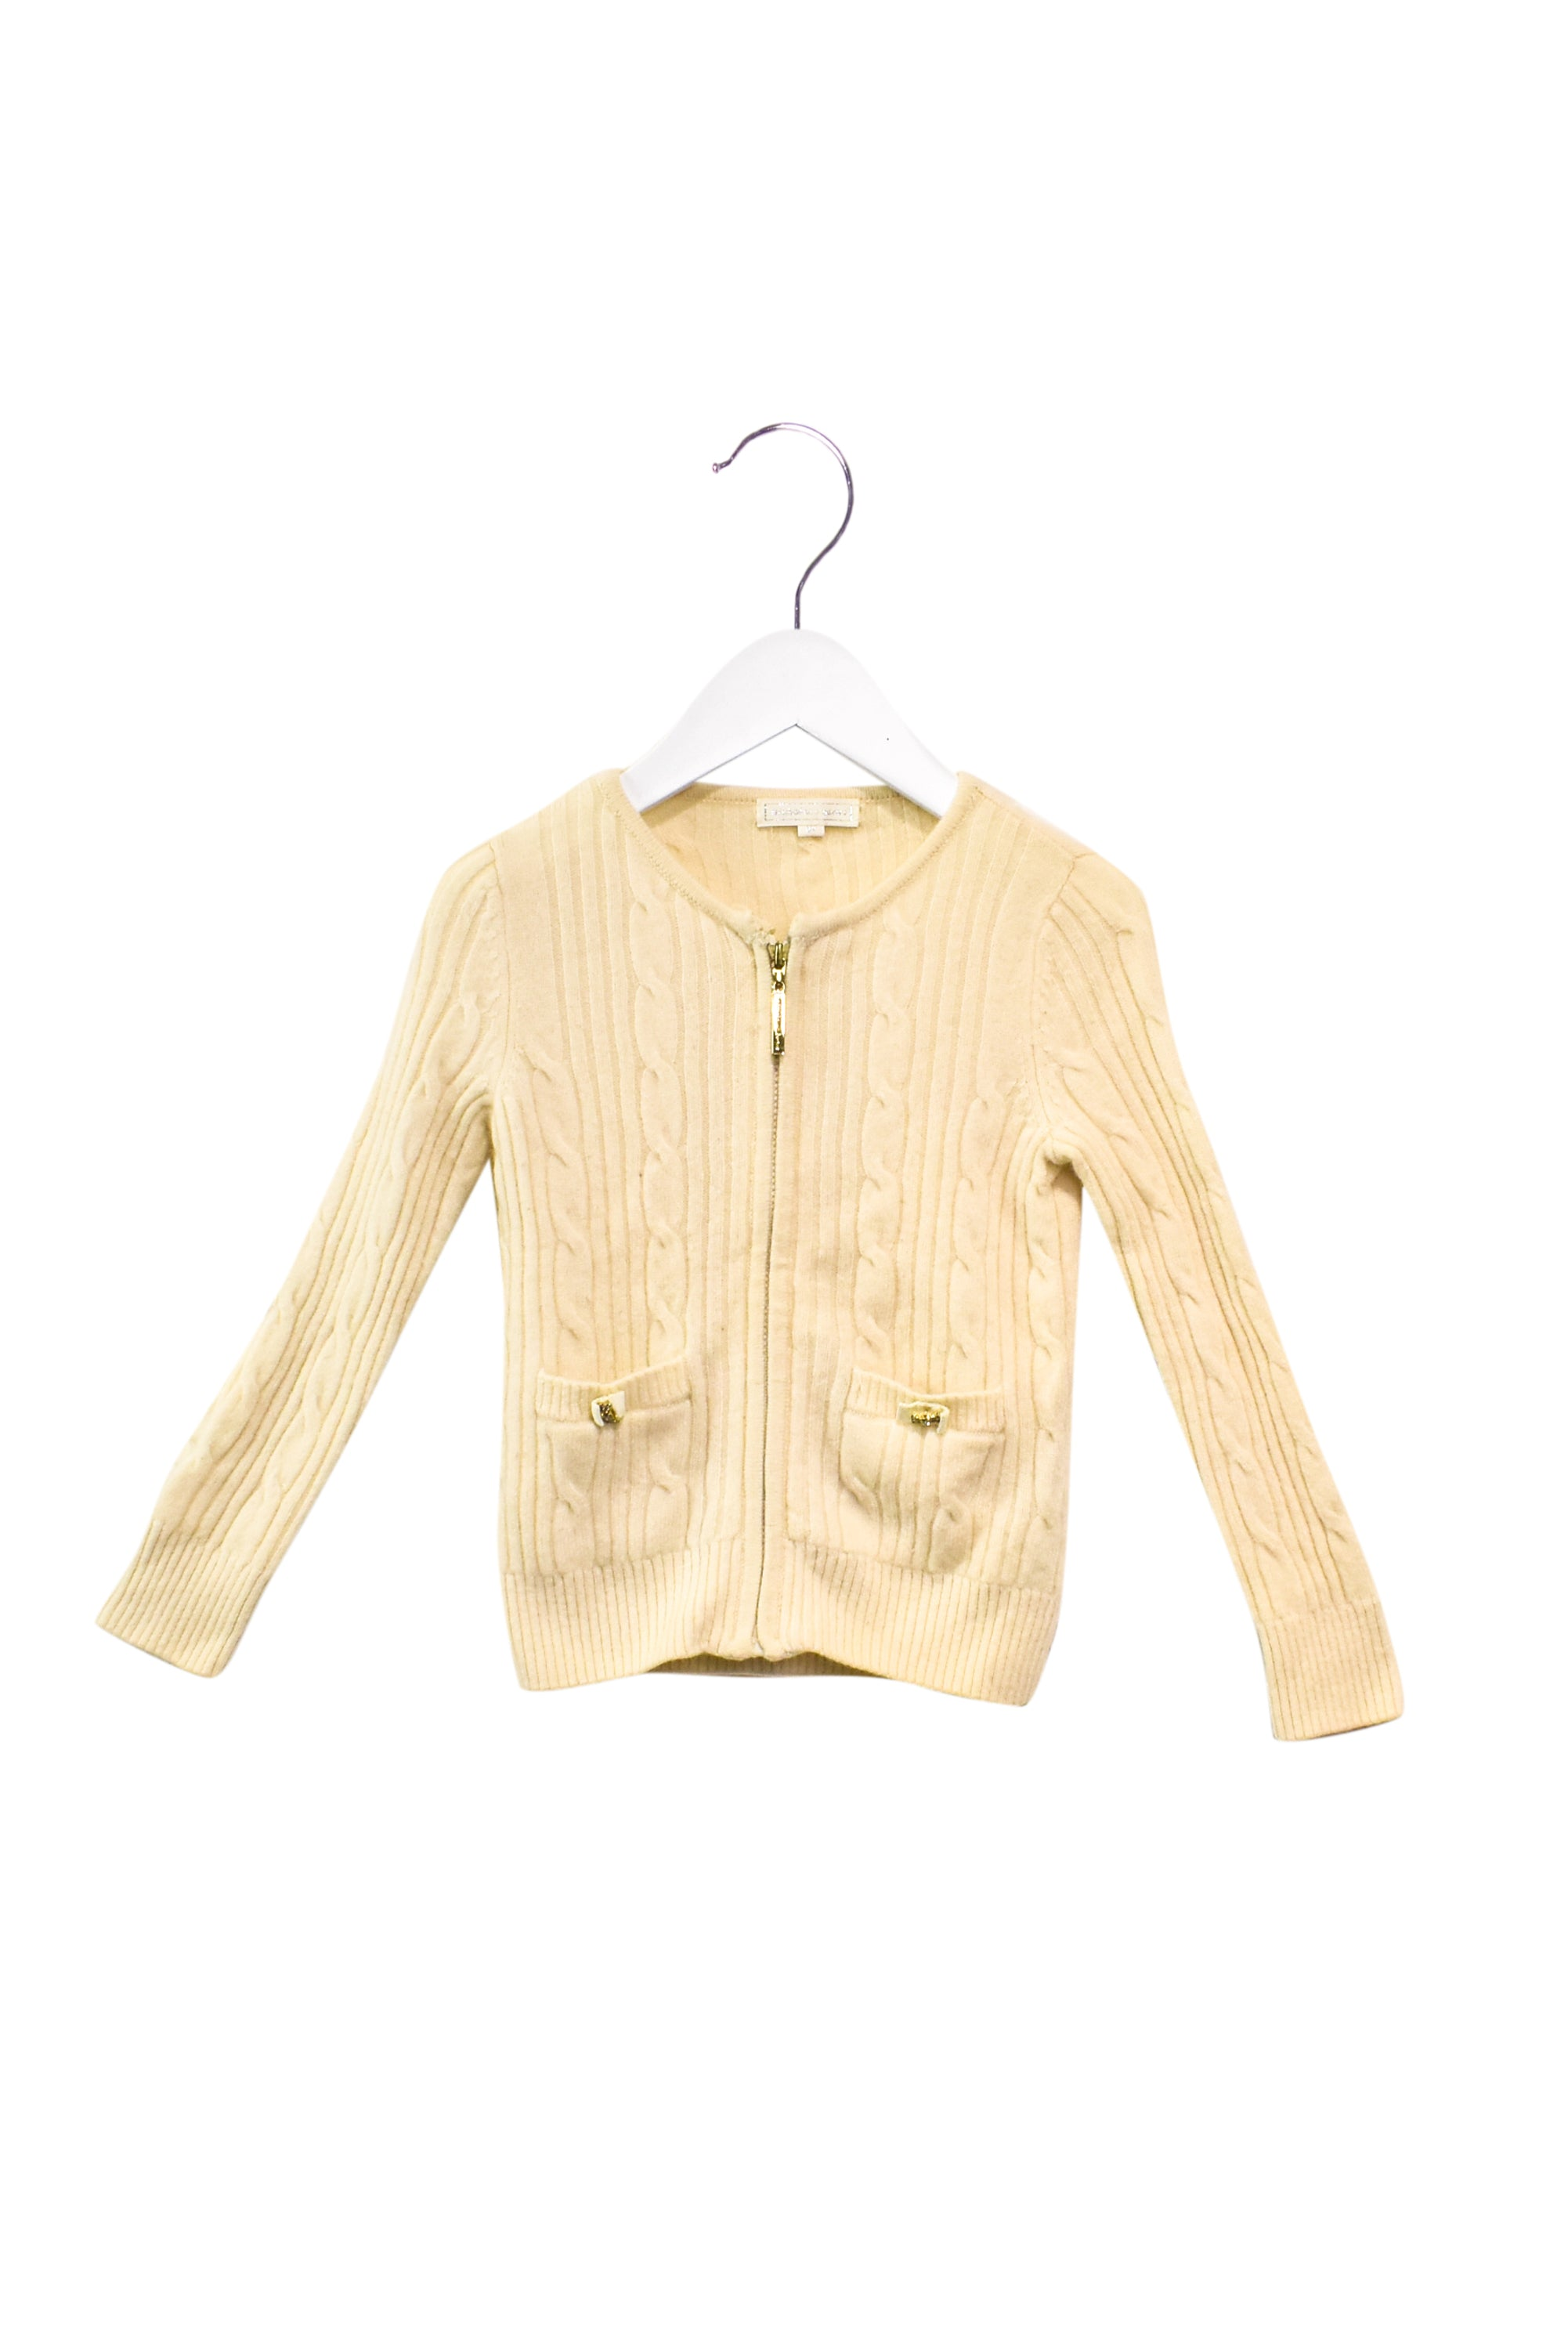 10028233 Nicholas & Bears Kids~Cardigan 3T at Retykle